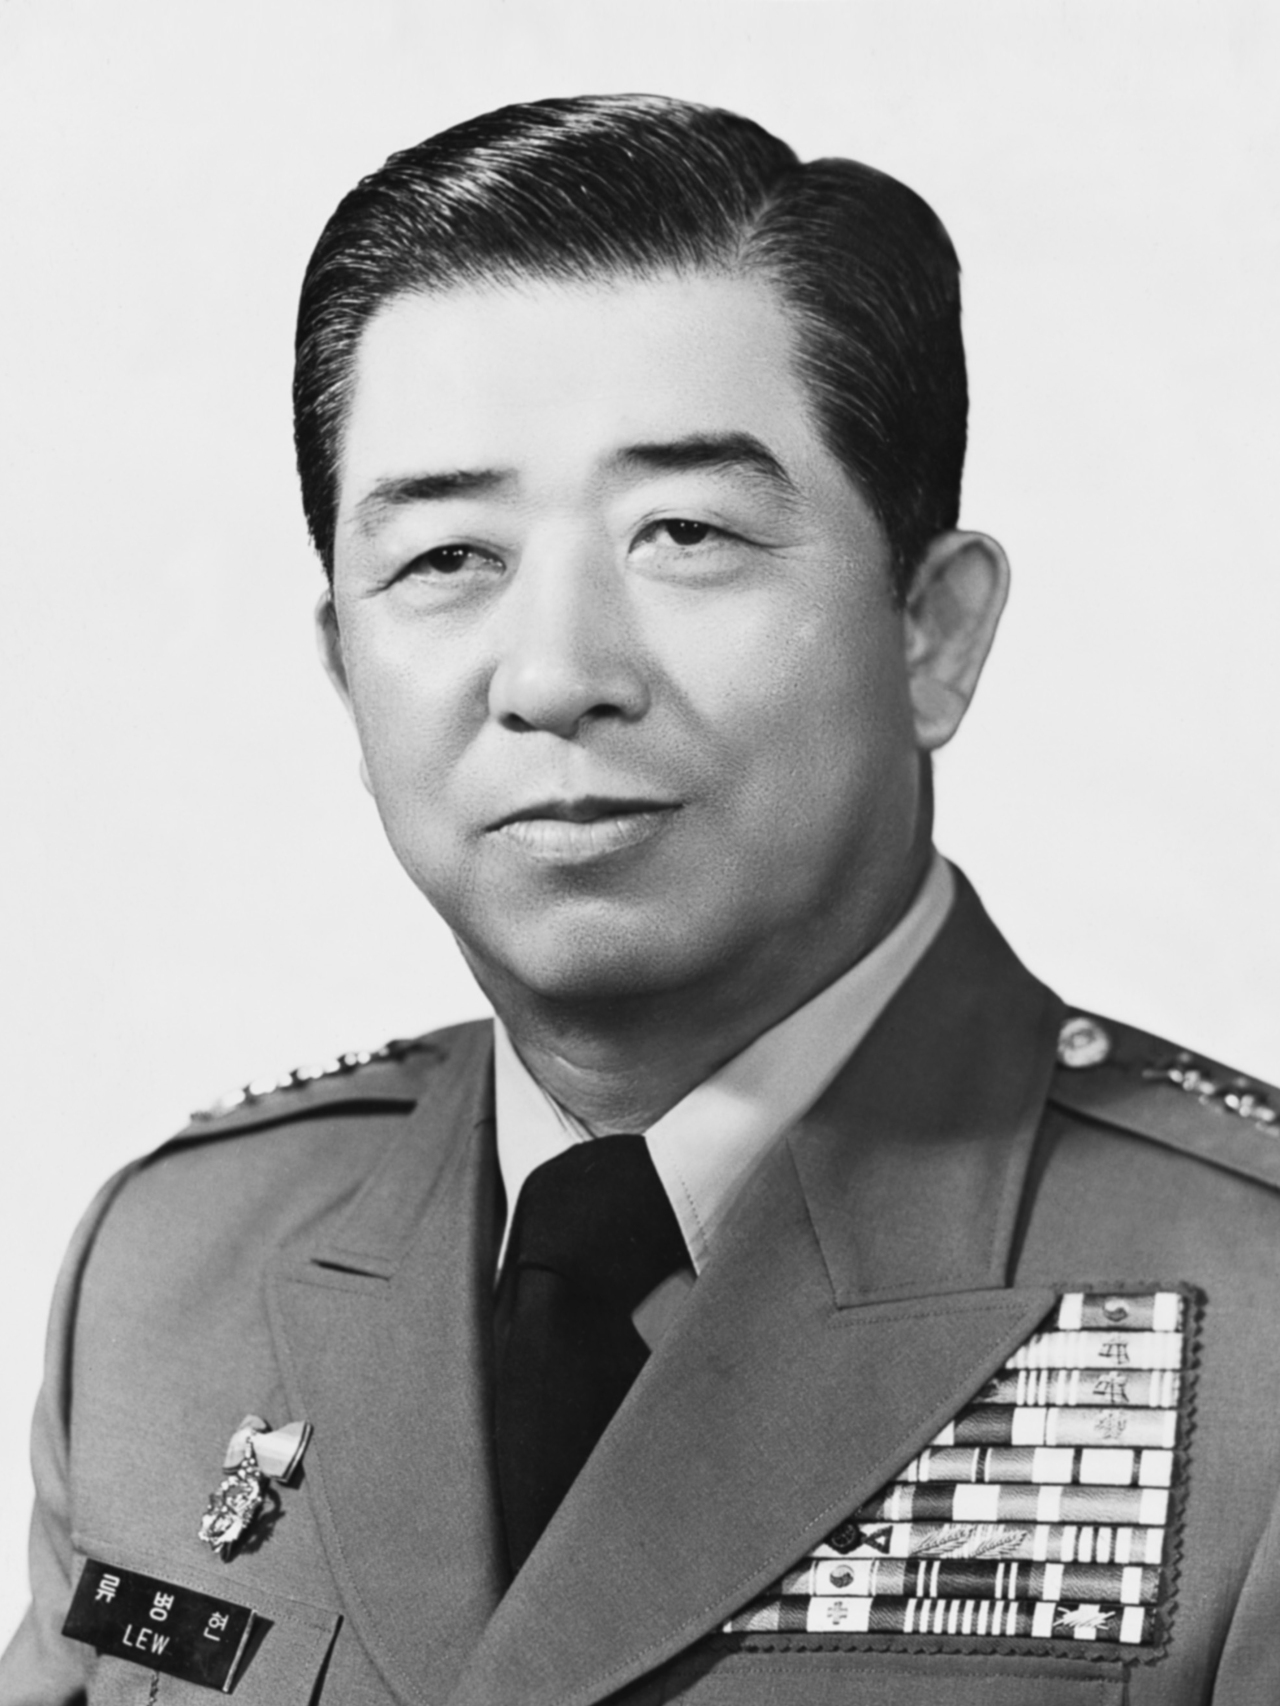 Lew Byong-hun (South Korea's Joint Chiefs of Staff)